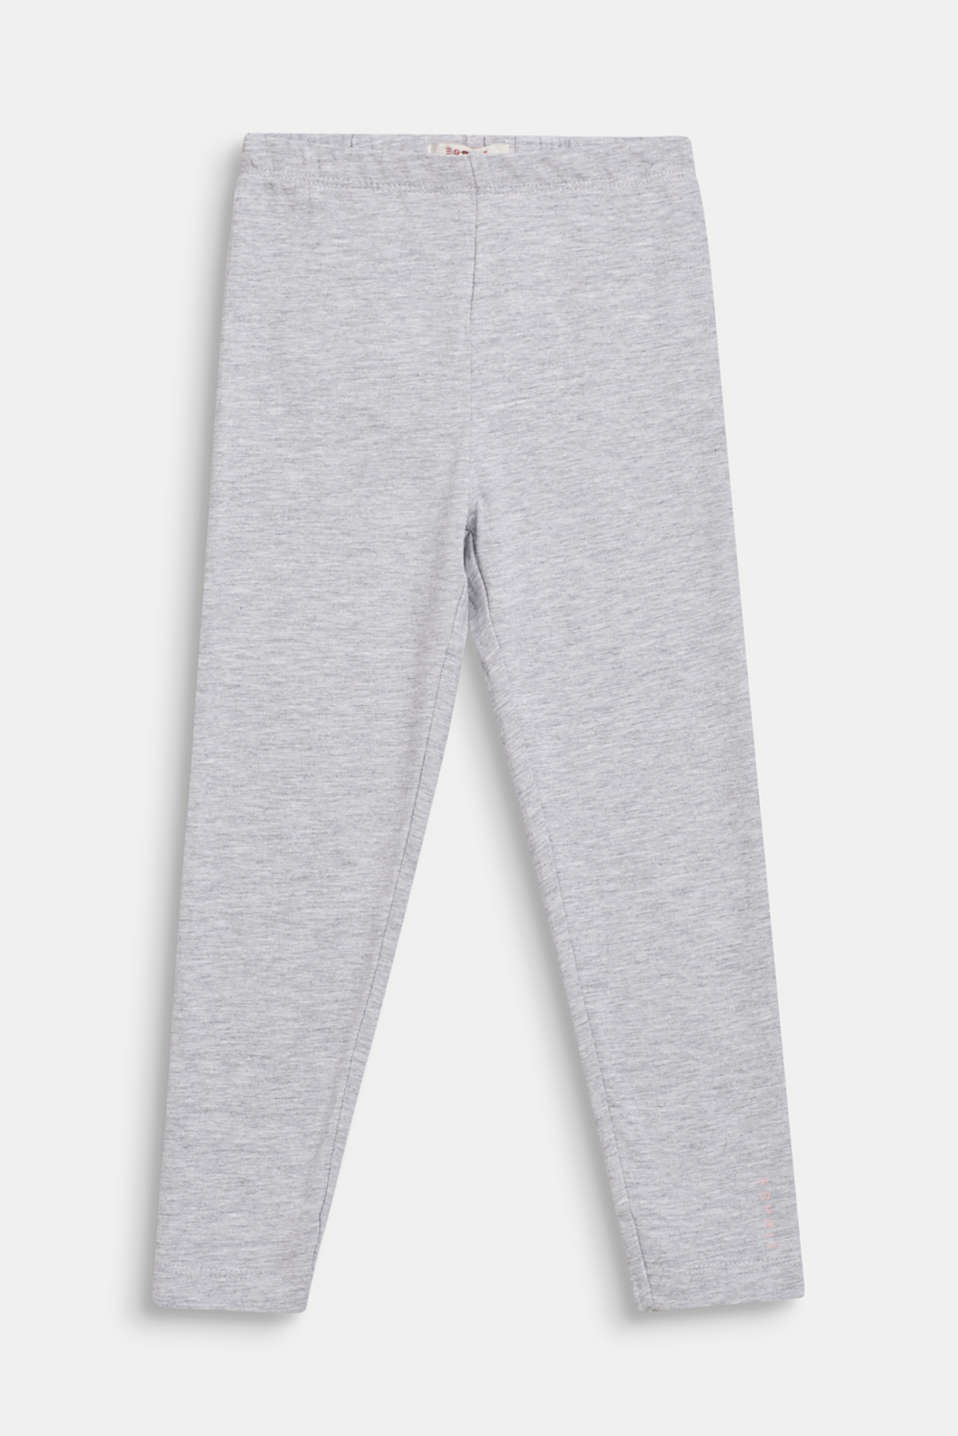 Esprit - Leggings aus blickdichtem Stretch-Jersey